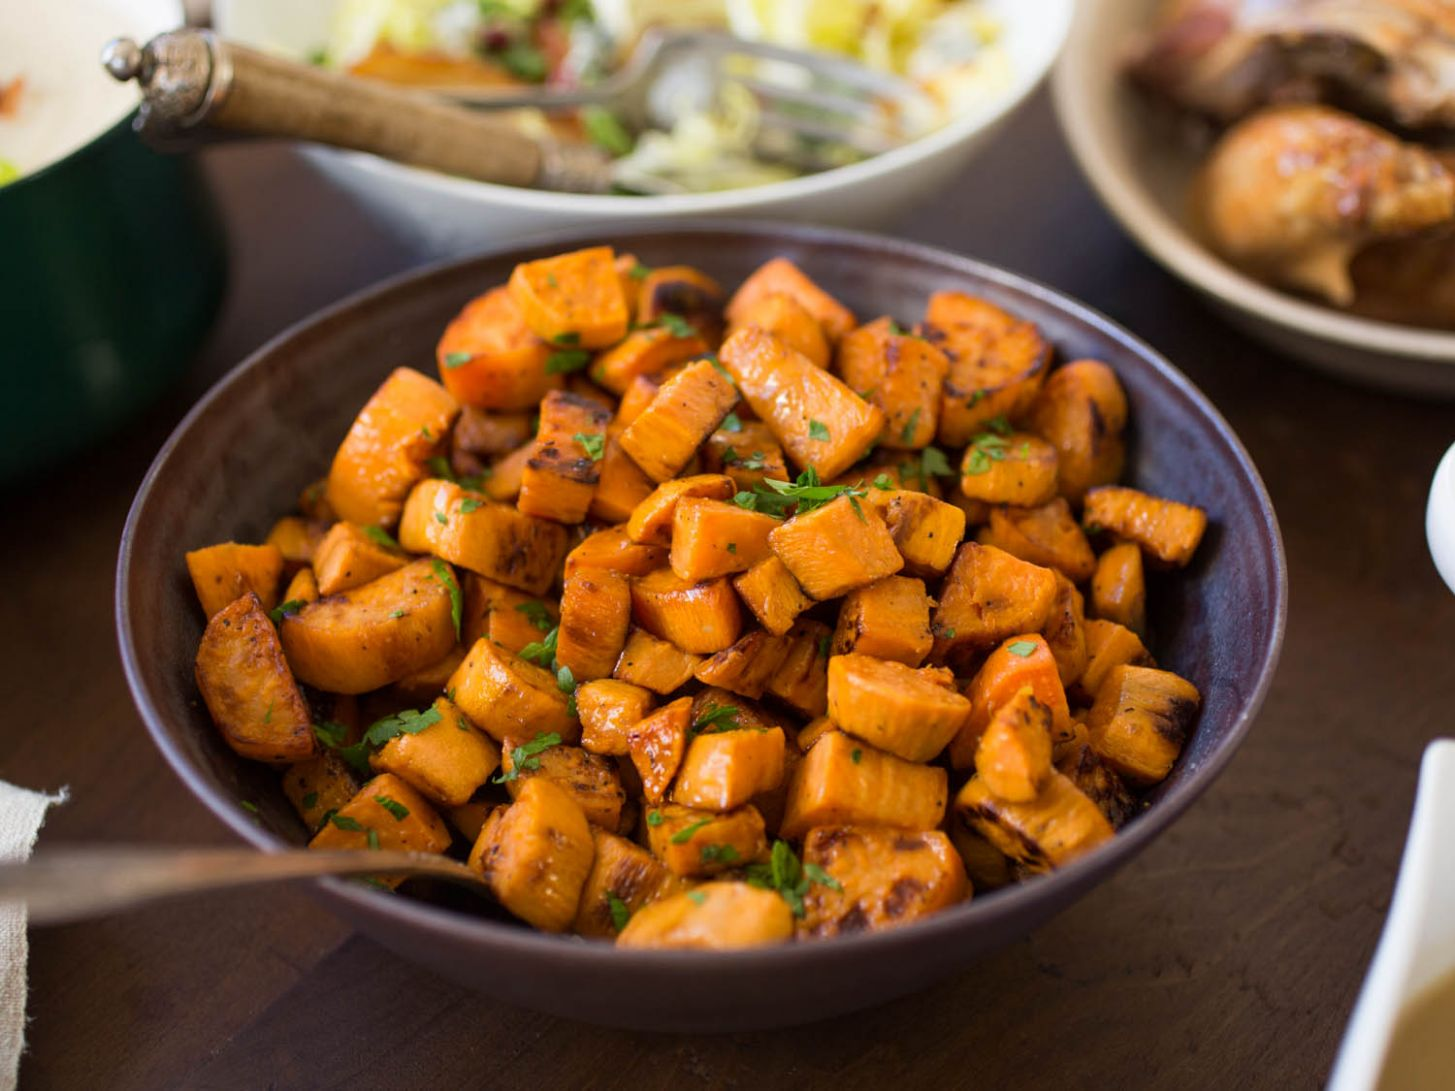 The Best Roasted Sweet Potatoes Recipe - Recipes Potato And Sweet Potato